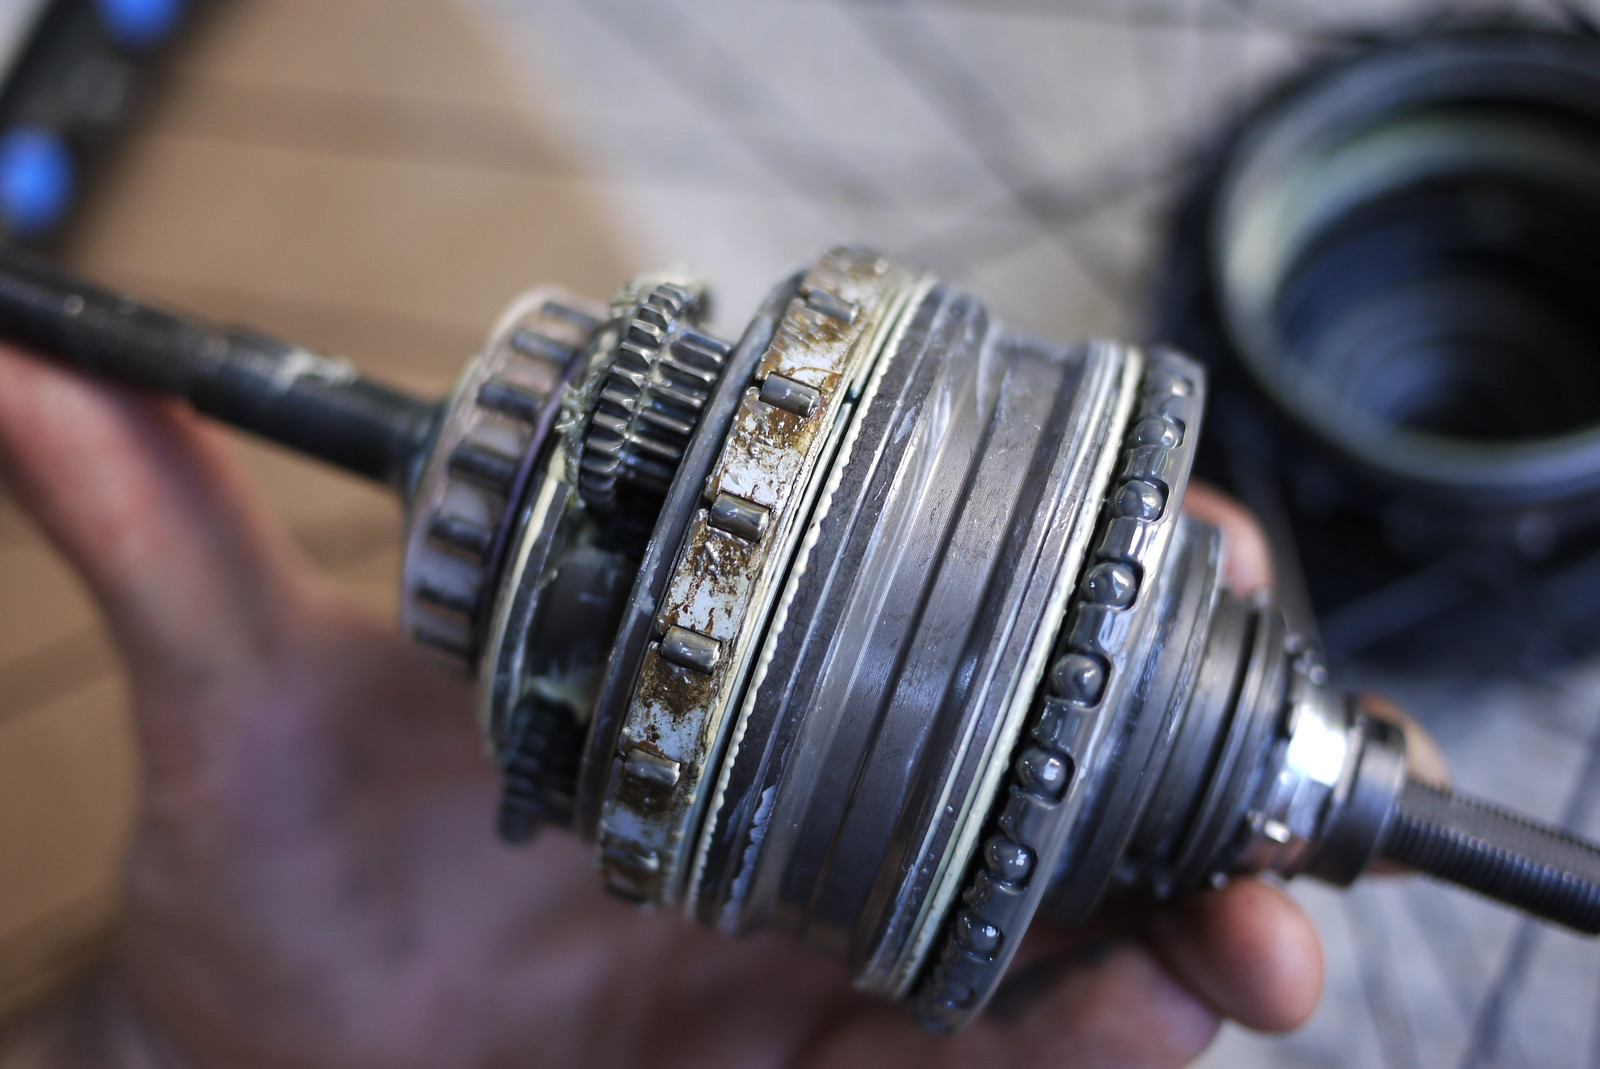 Shimano Alfine 8 Speed Internal Gear Hub (IGH) insides after 1 year commuting (shows minor water damage)